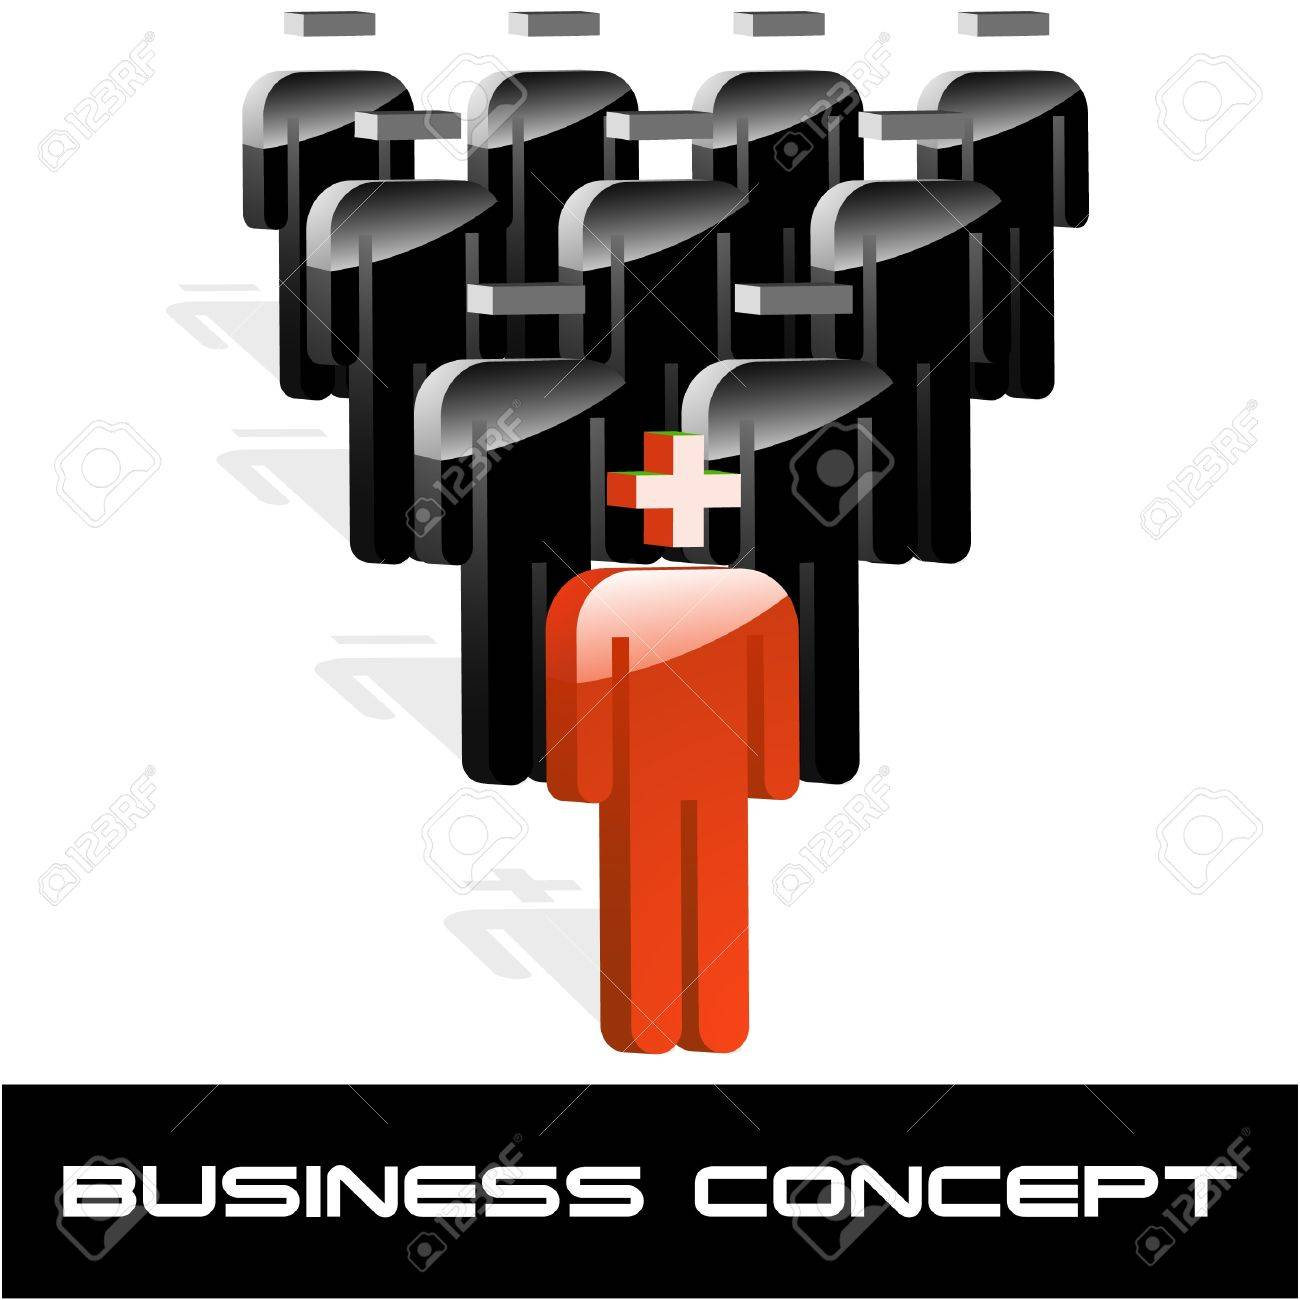 Business concept. Vector illustration. Stock Vector - 9401831